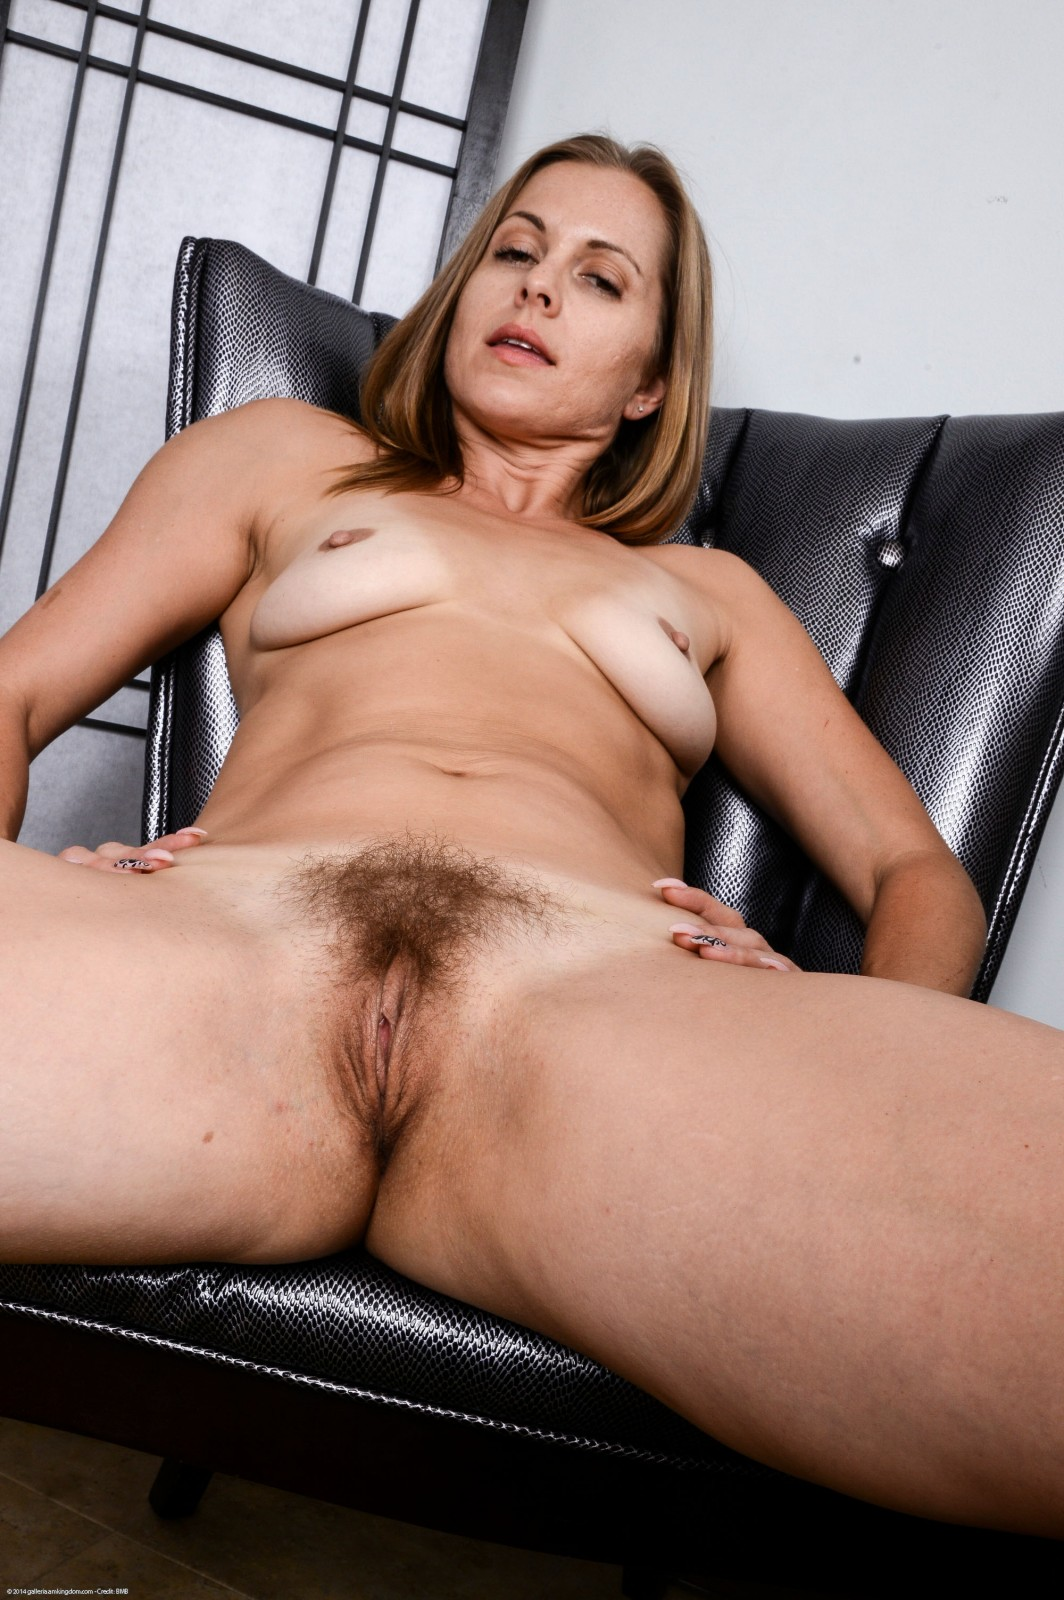 Mature milf showing pussy